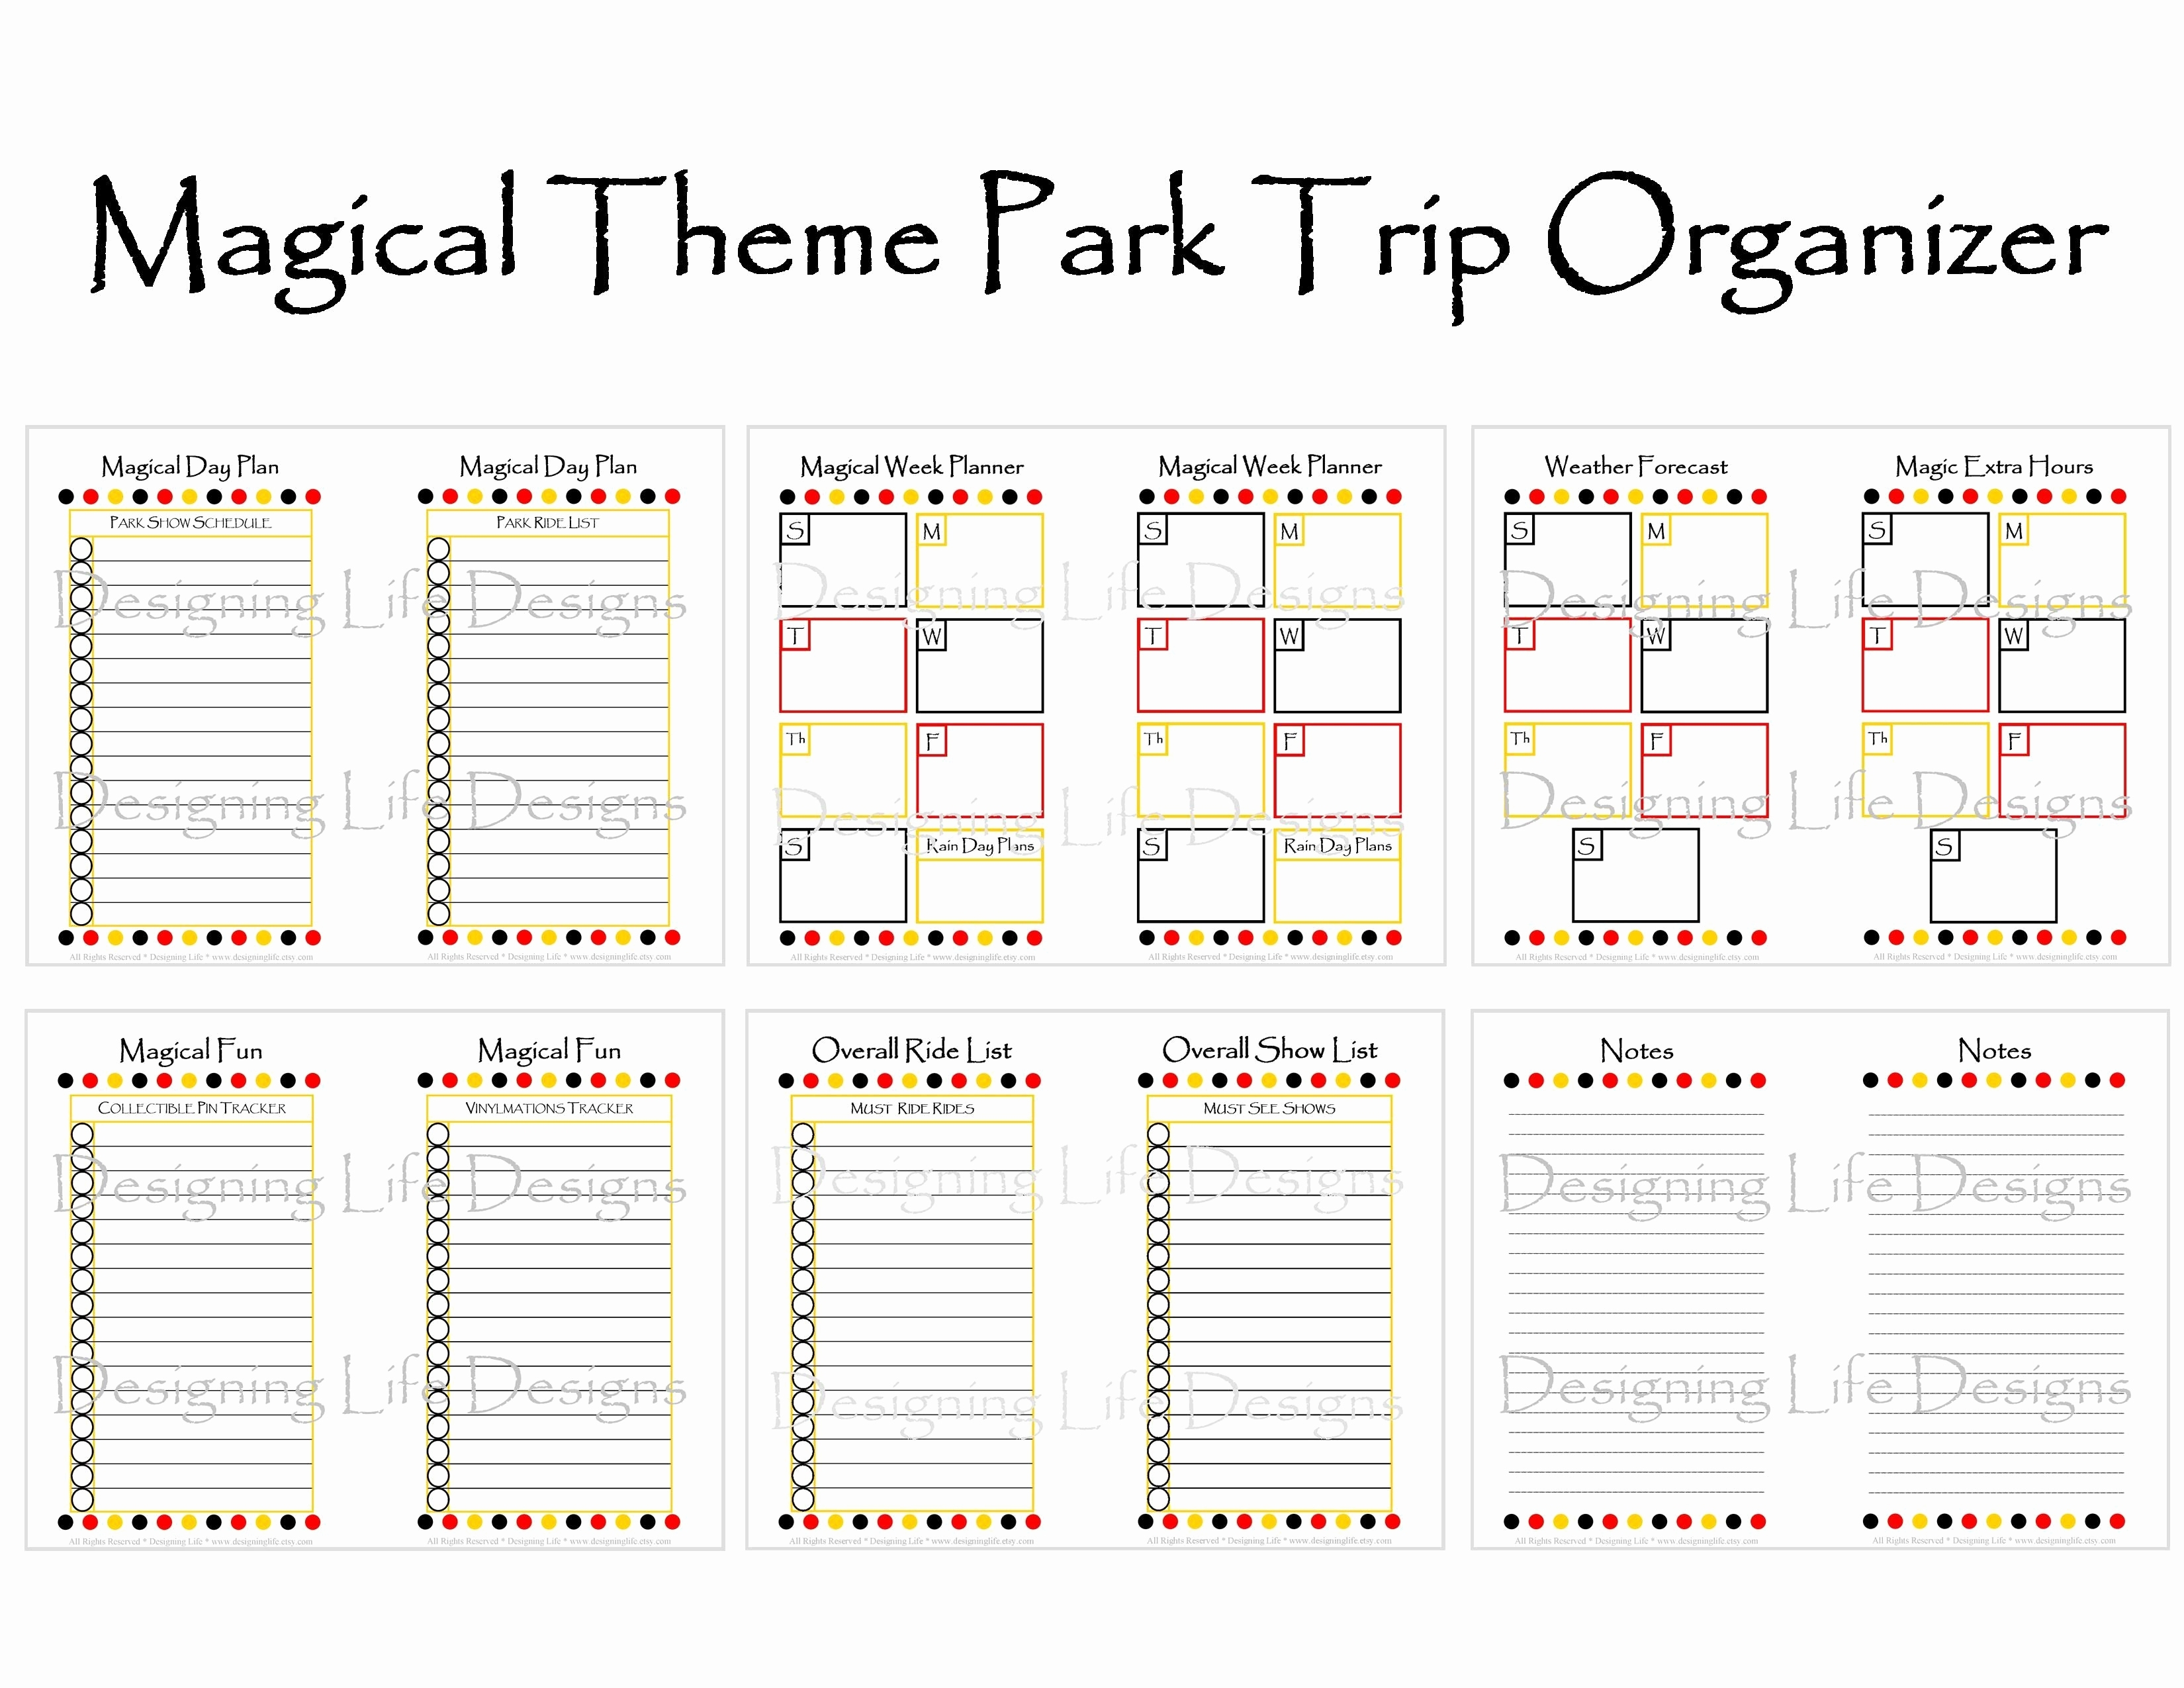 Disney World Itinerary Template Blank | Template Calendar Printable with Disney World Itinerary Template Blank